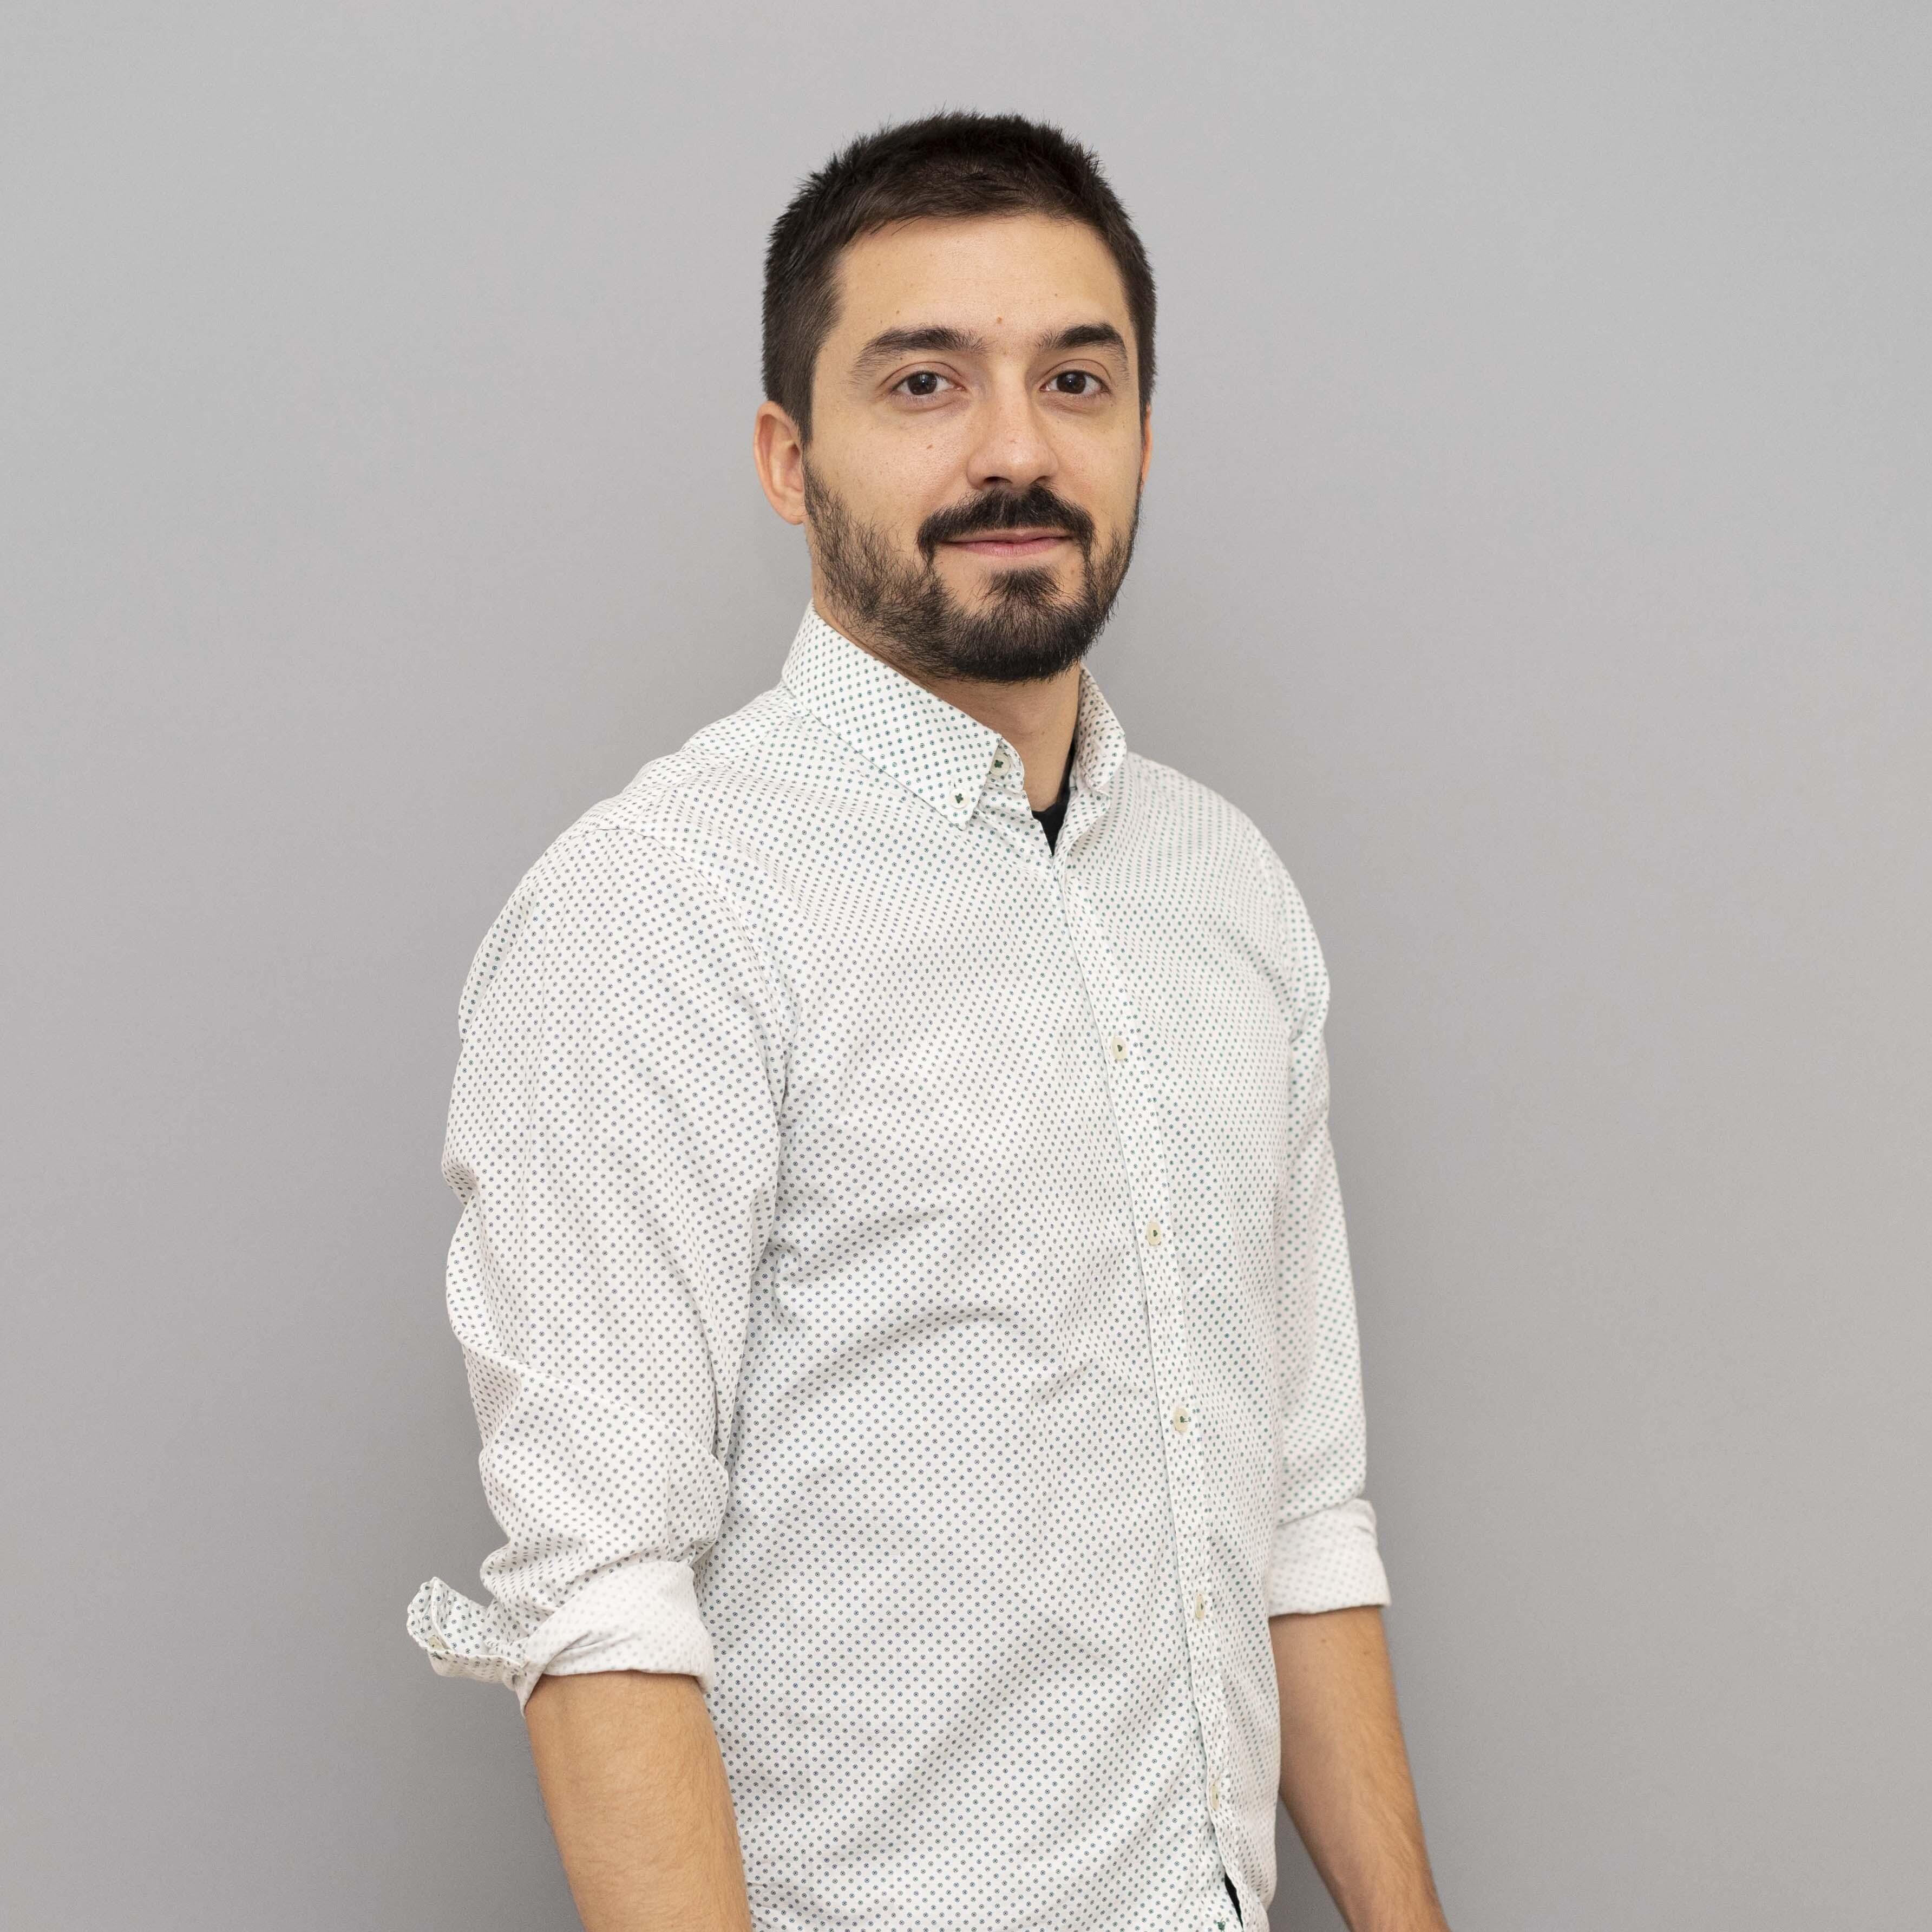 Man in white shirt standing in front of a light gray background